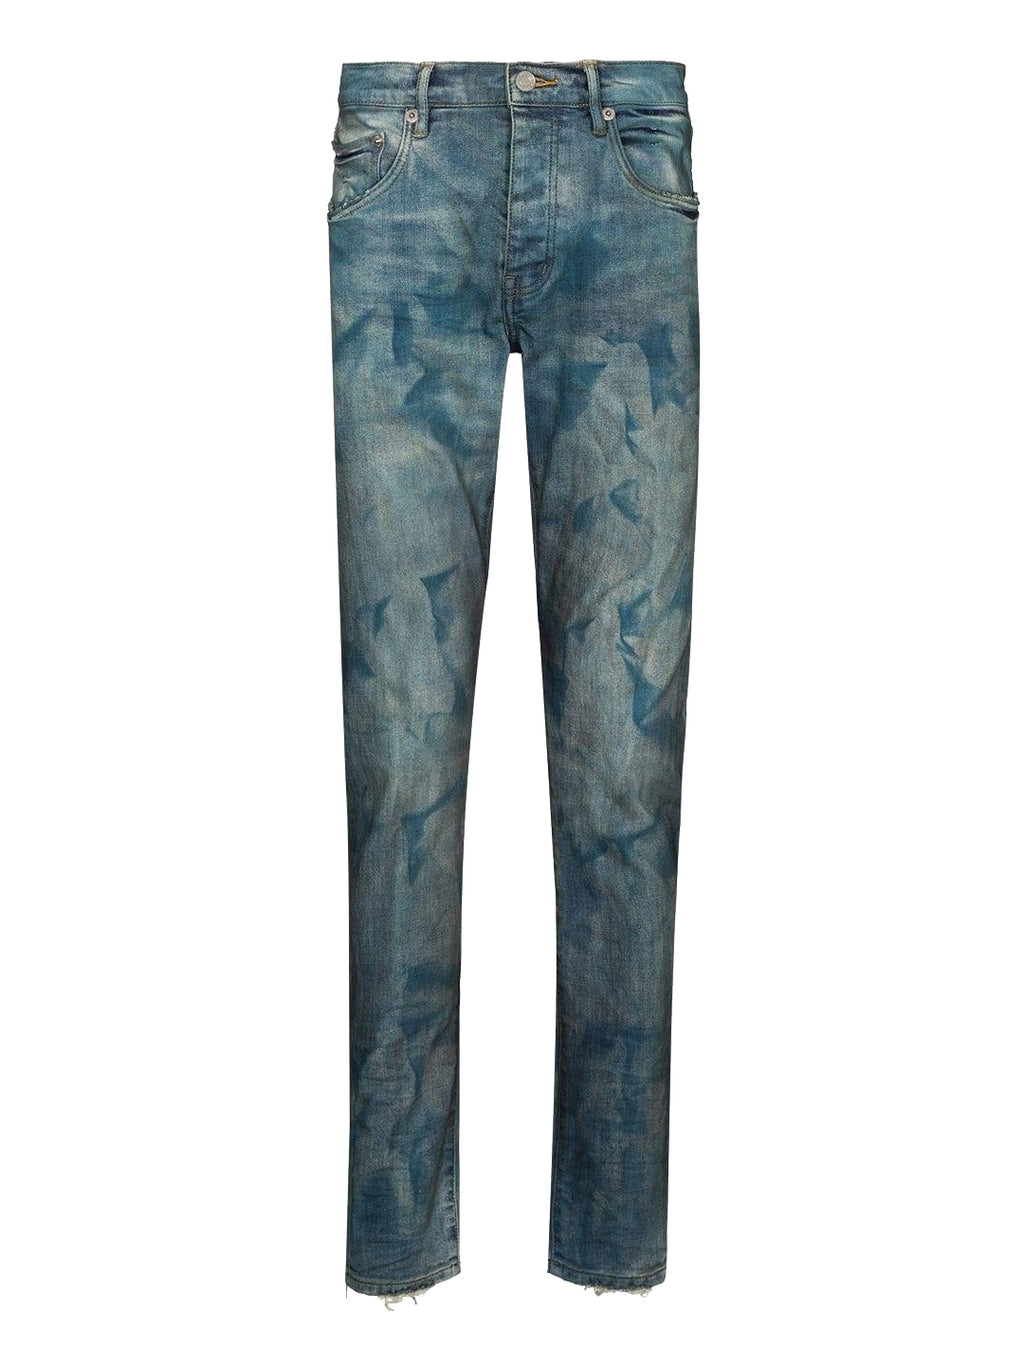 French Blue Bleached Effect Denim Pants